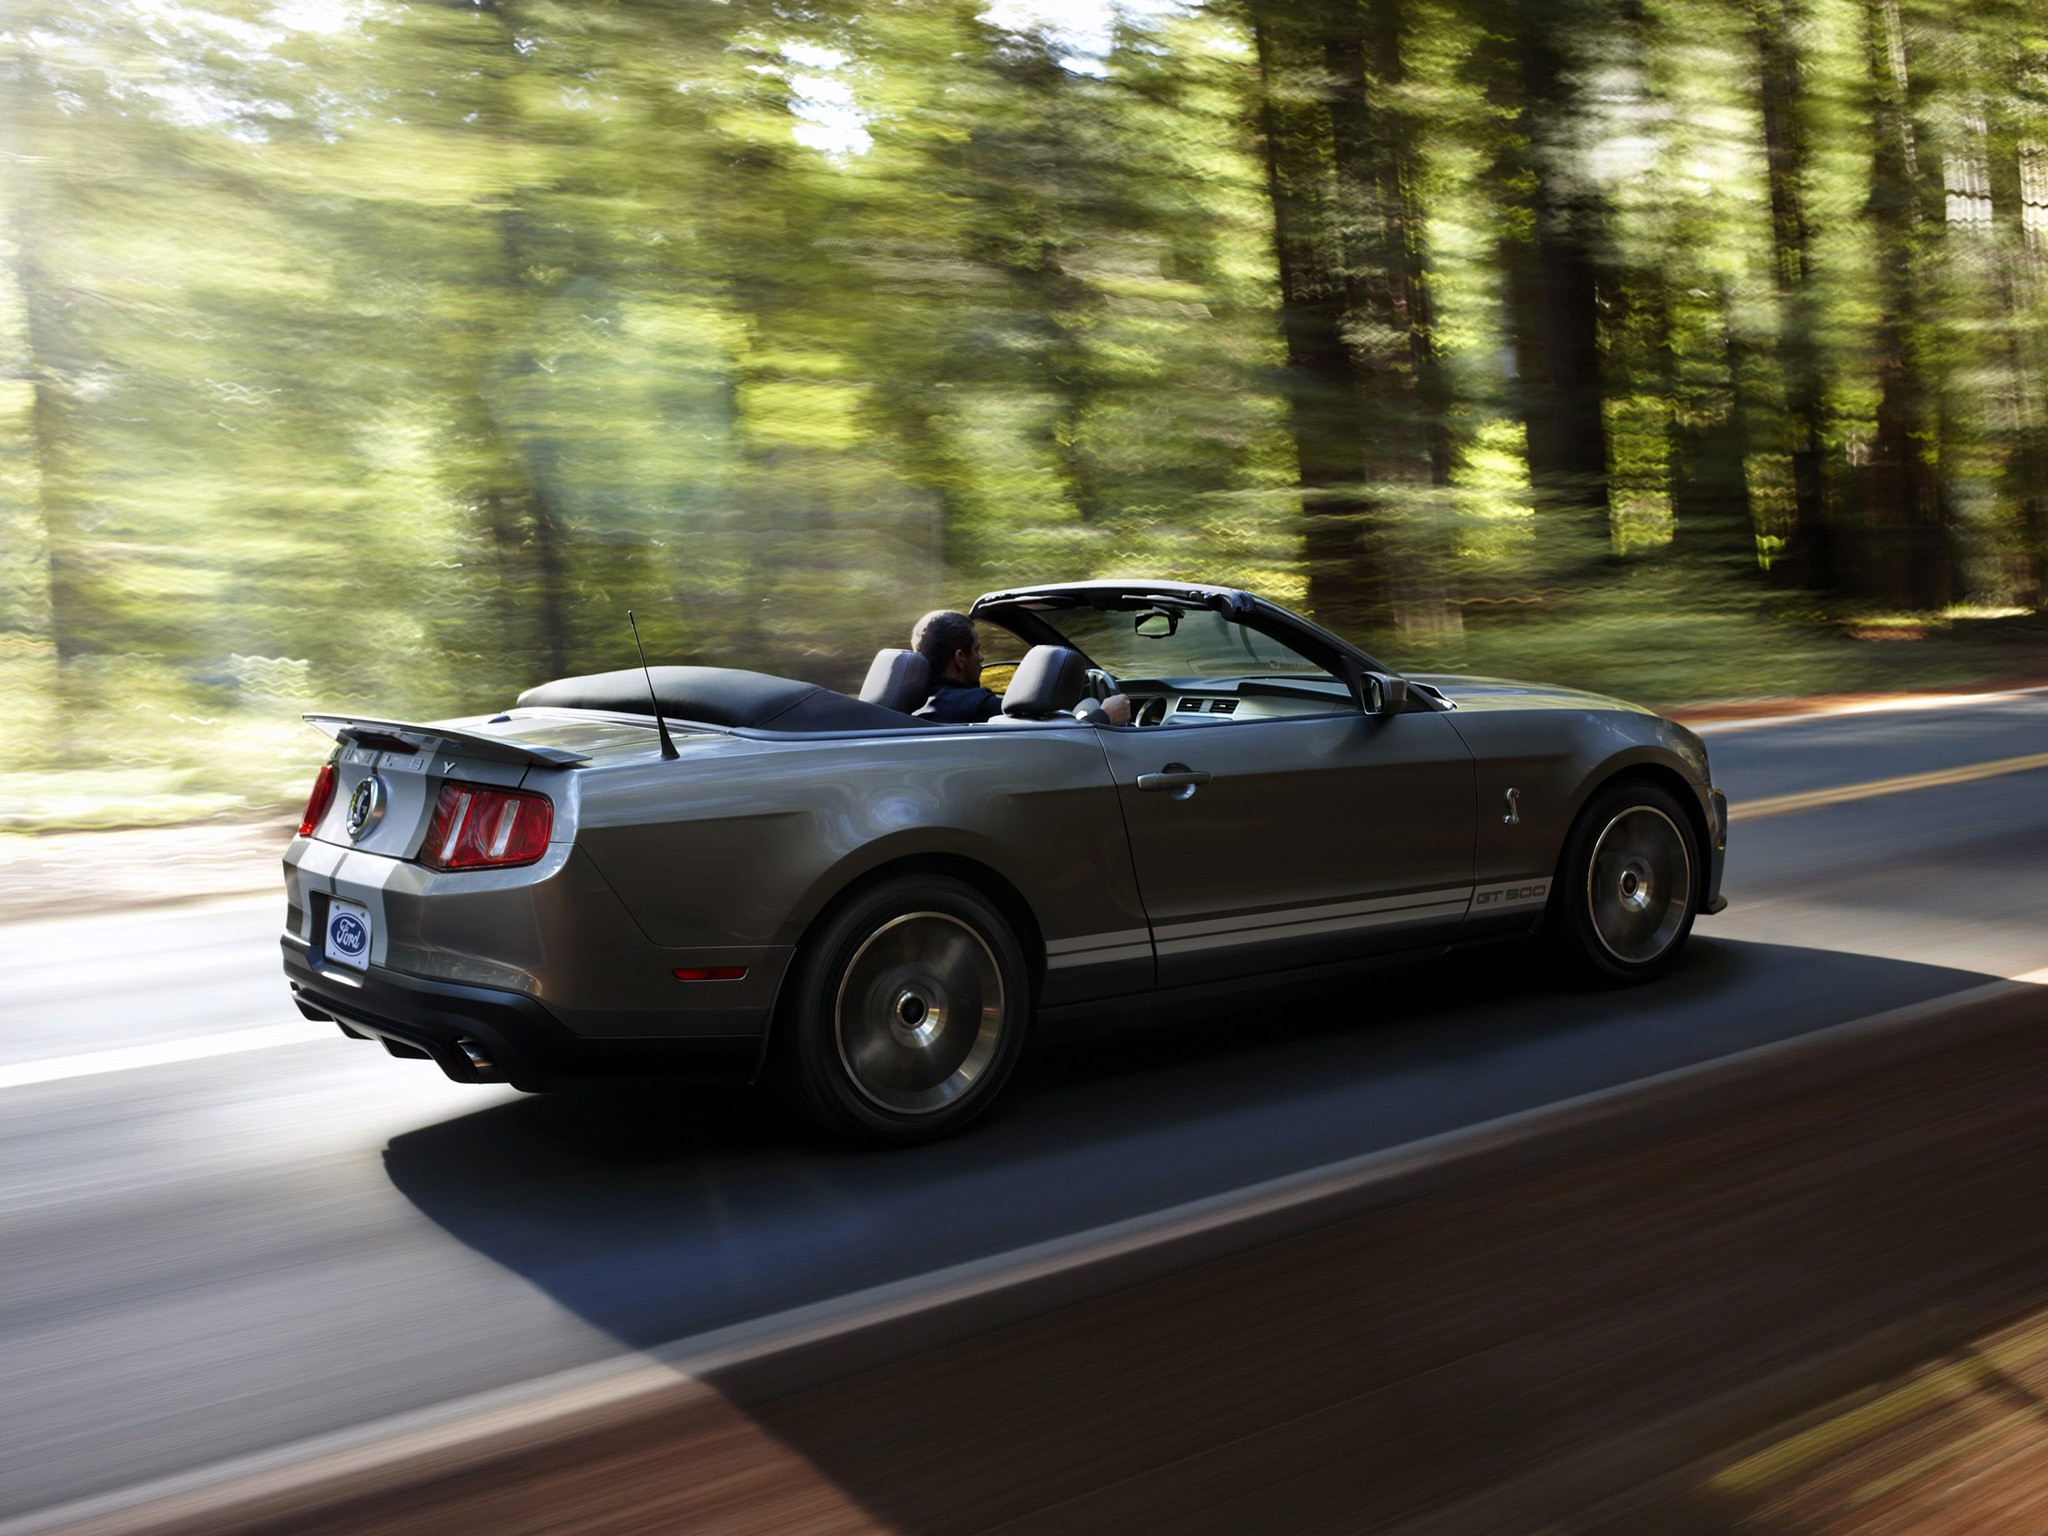 ford mustang shelby gt500 convertible 2009 2010 2011 2012 - Ford Mustang Convertible 2010